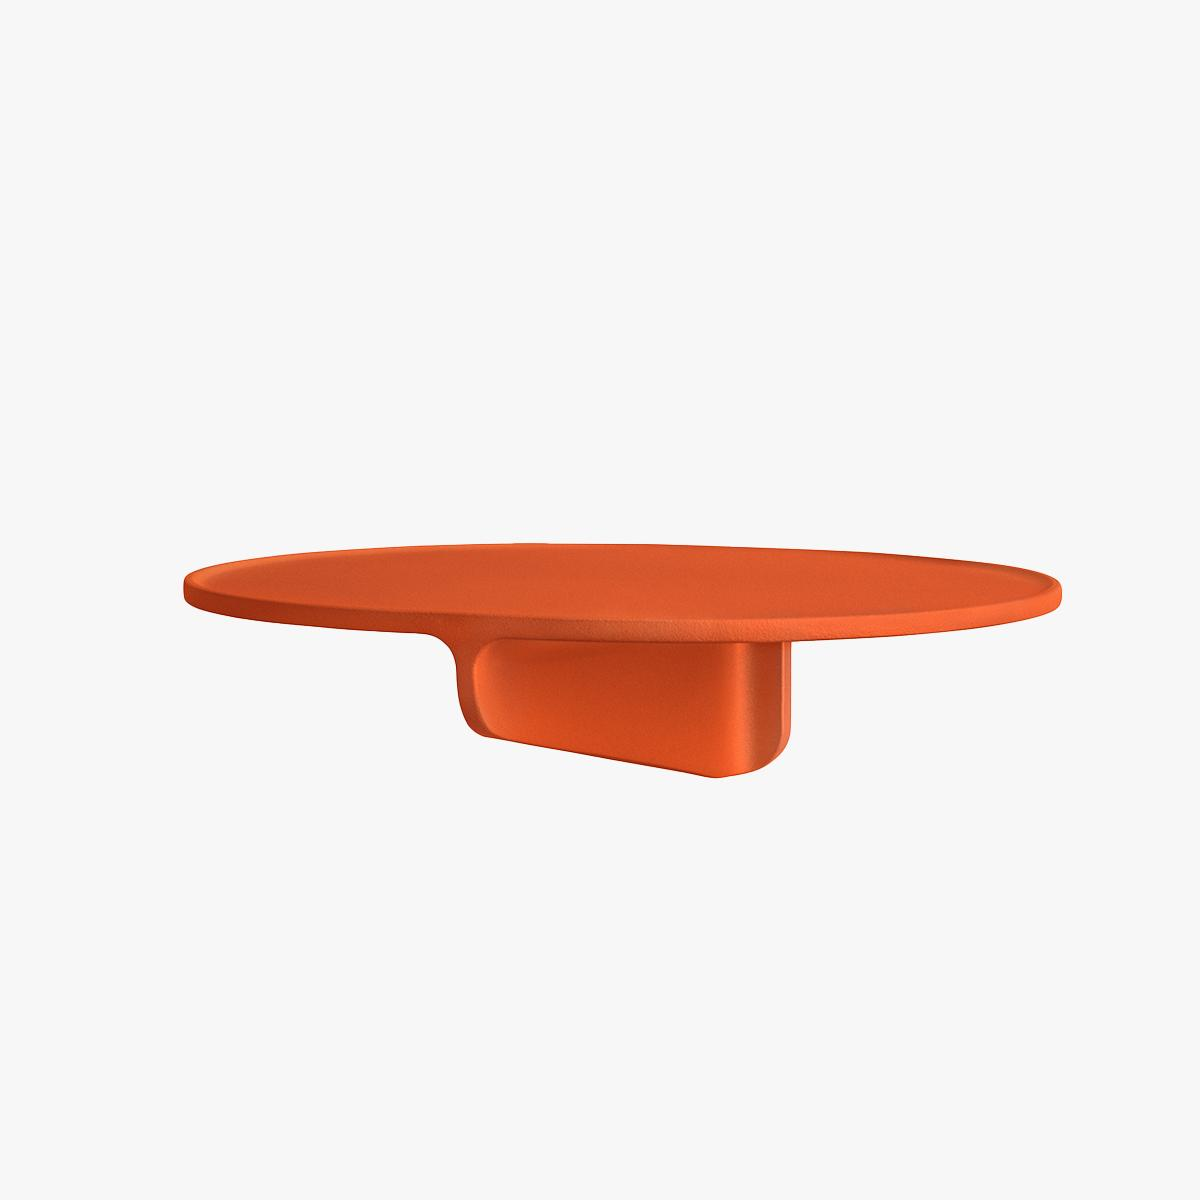 string-museum-shelf-orange-1200f7